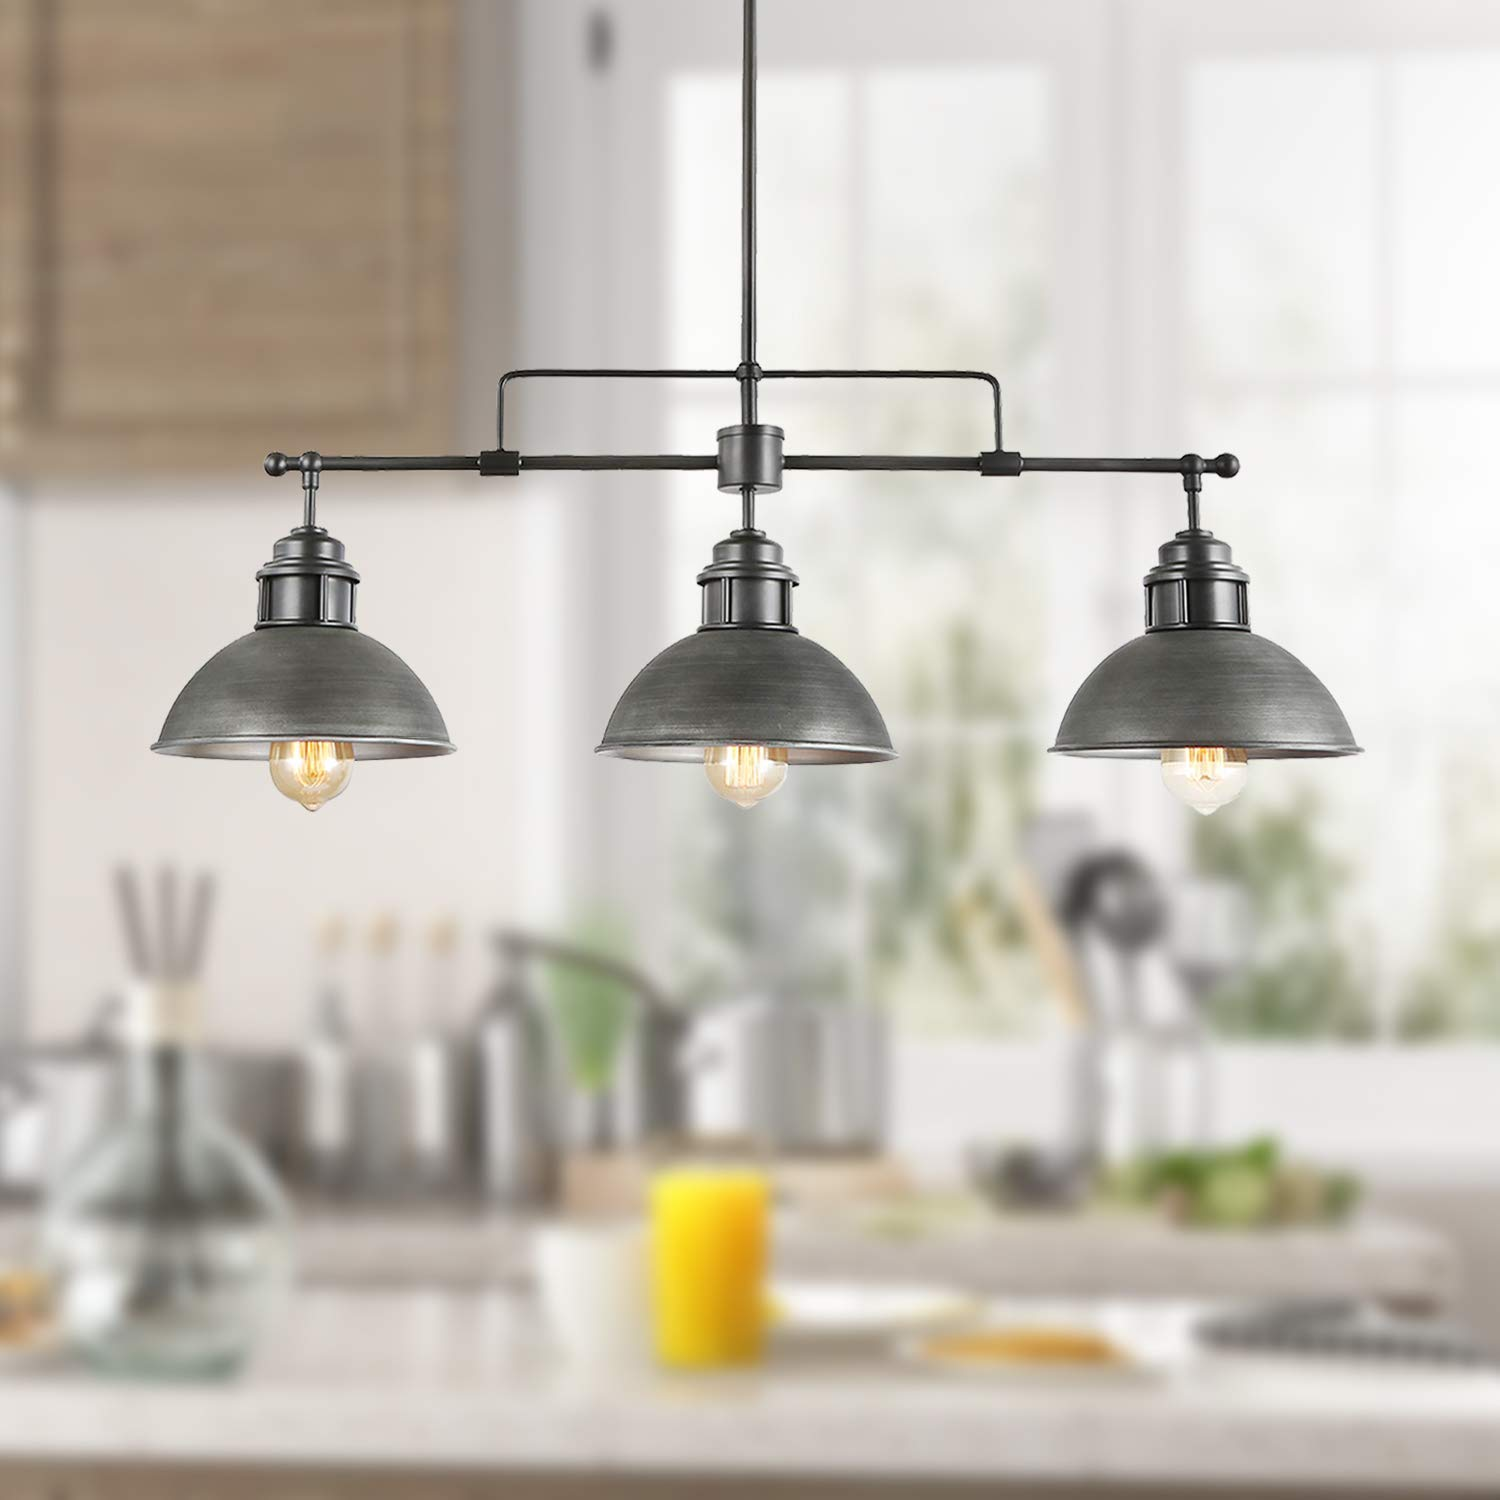 "LOG BARN 3 Lights Industrial Kitchen Pendant Linear Chandelier in Brushed Antique Silver Metal Finish, 35.7"" Large Island Lighting Fixture, A03255"